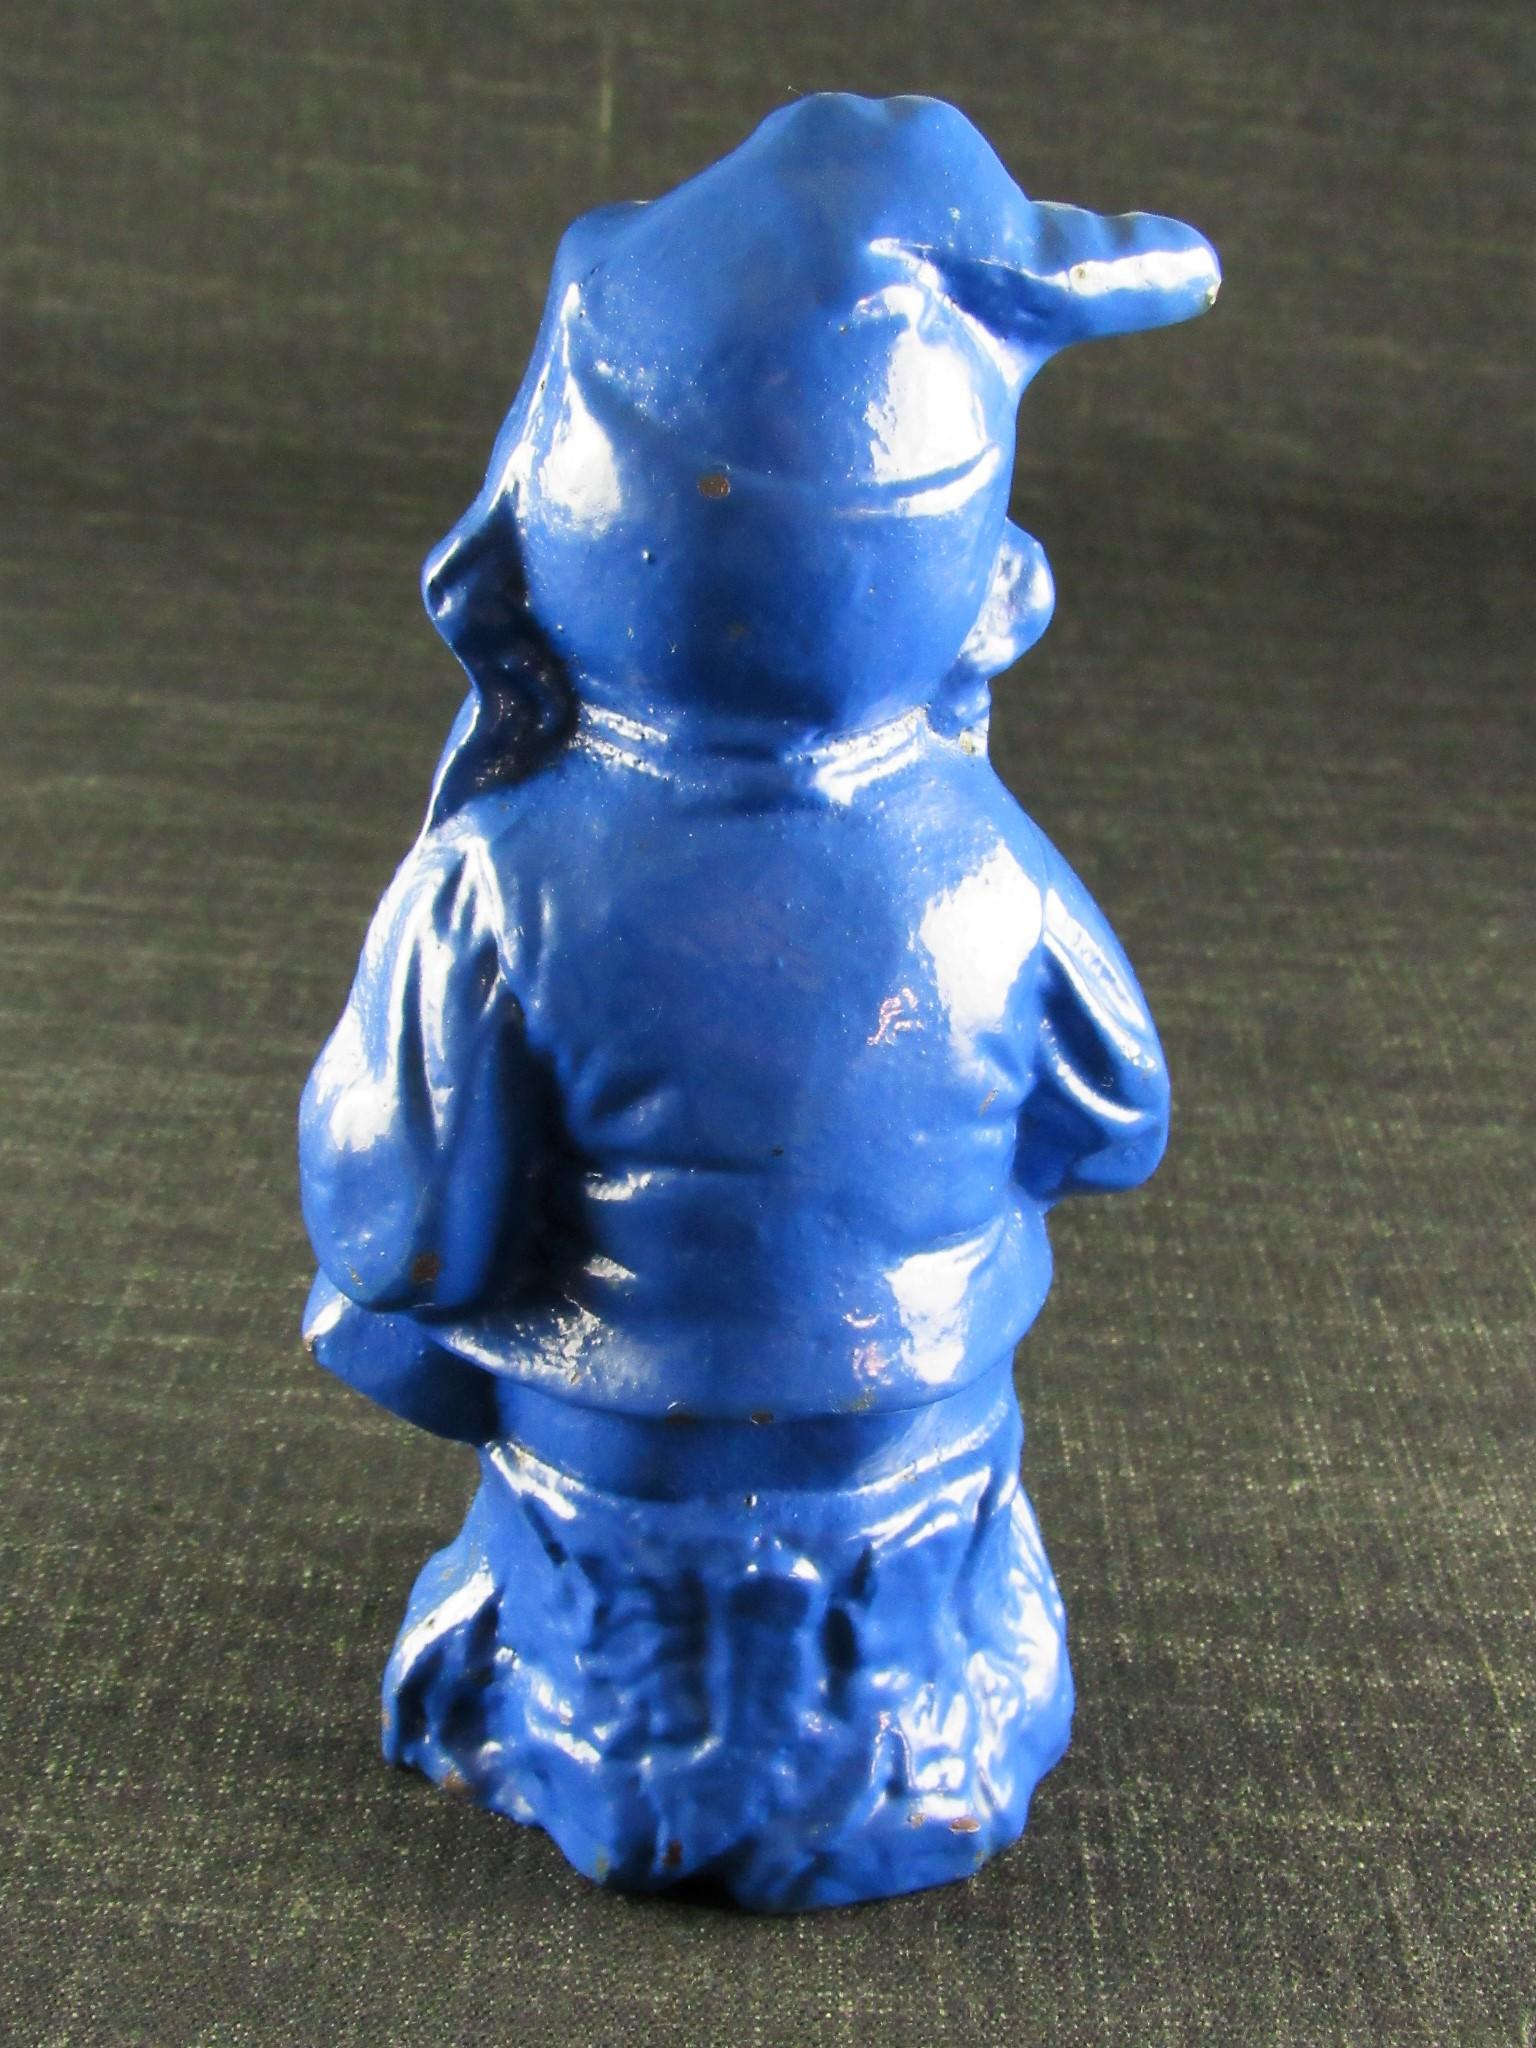 RECORD Bulldog Cast Iron Garden Gnome